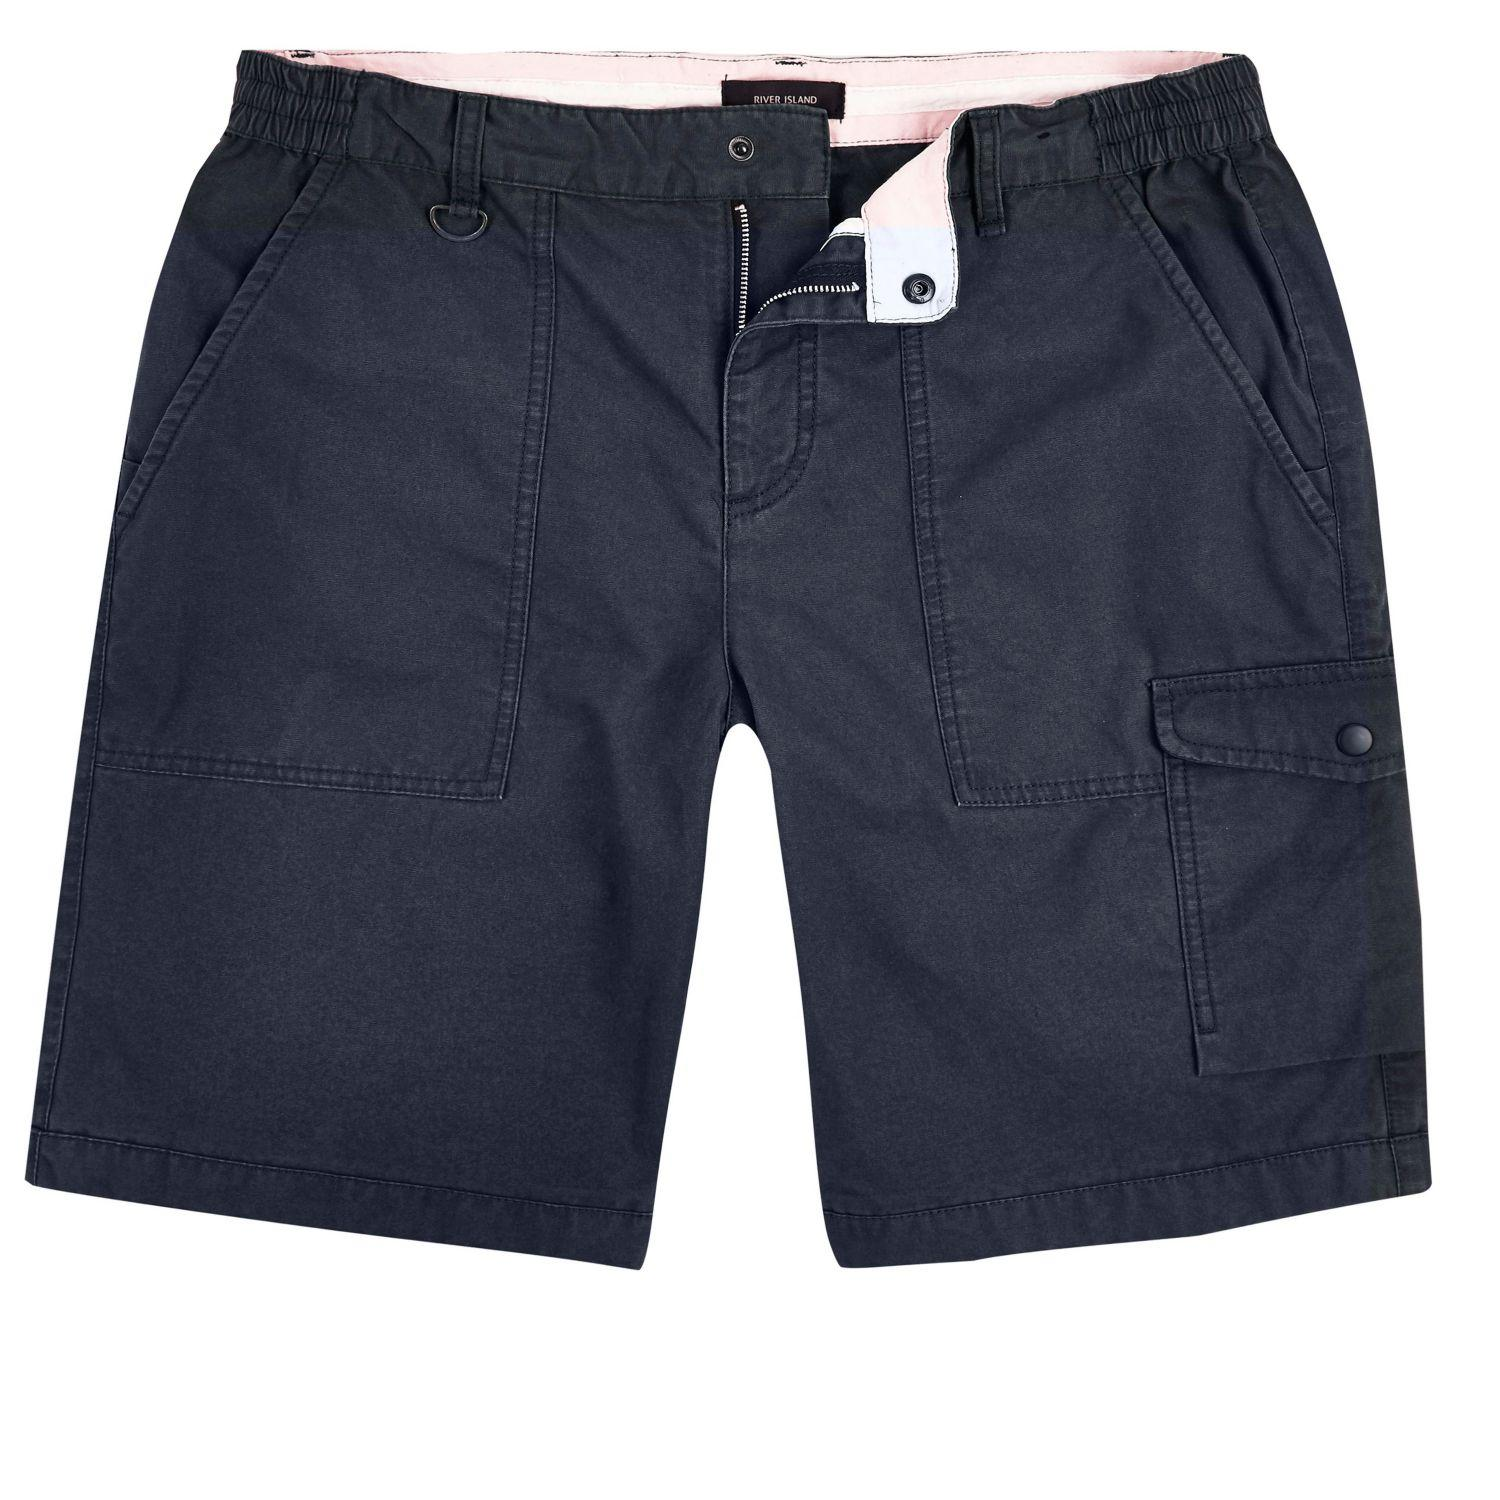 92f1d91773 River Island Navy Slim Fit Cargo Shorts in Blue for Men - Lyst